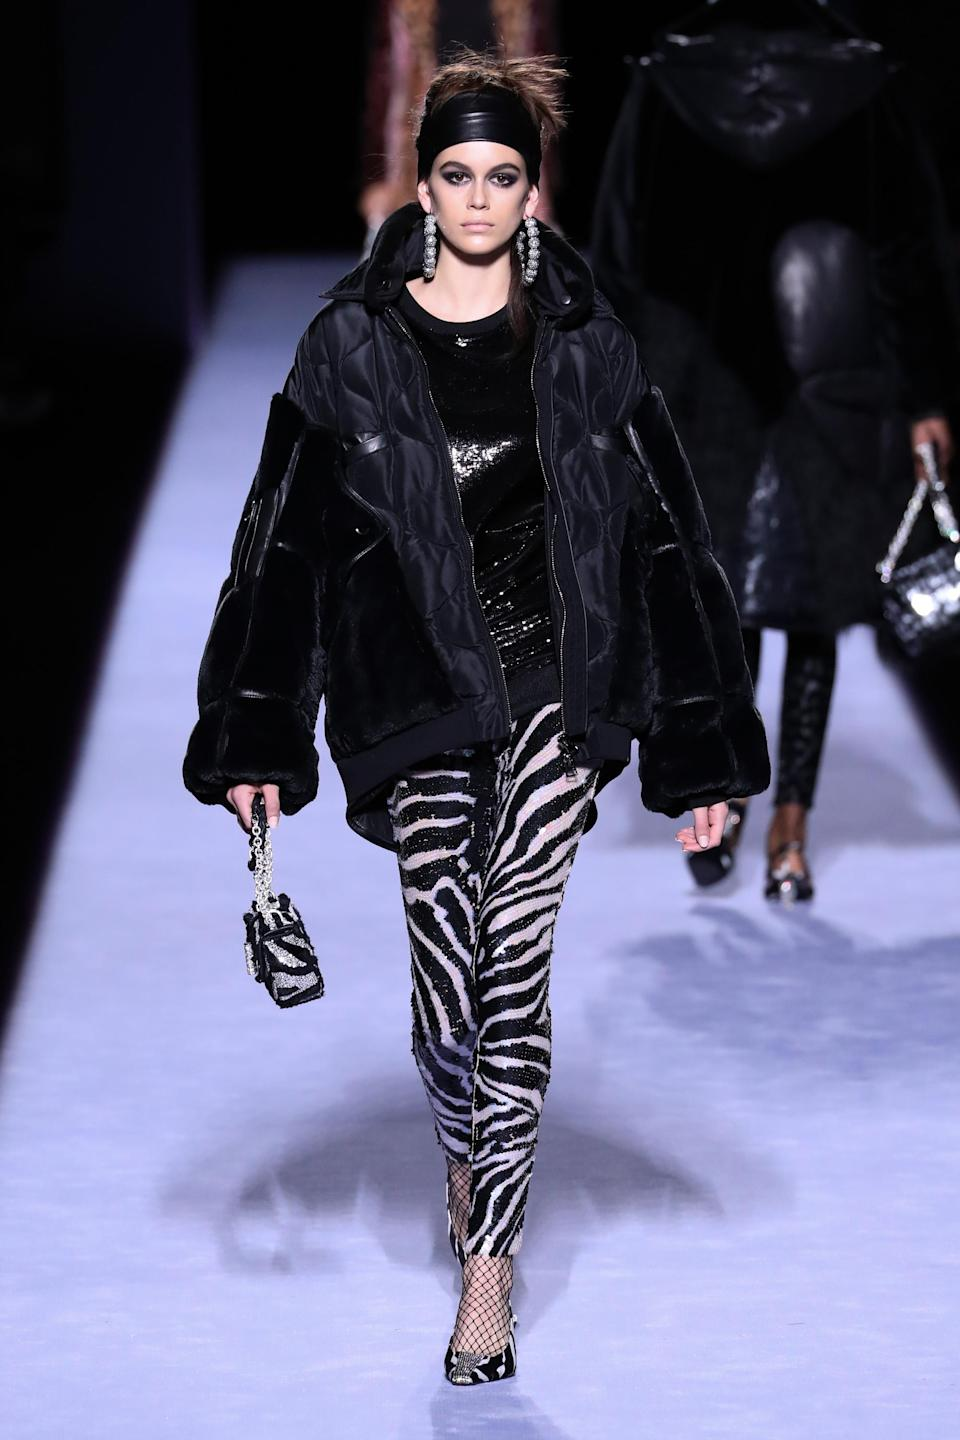 <p>Cindy Crawford's daughter walked a HUGE pair of earrings down the runway, while wearing a pair of zebra print trousers and carrying a matching bag. <em>[Photo: Getty]</em> </p>